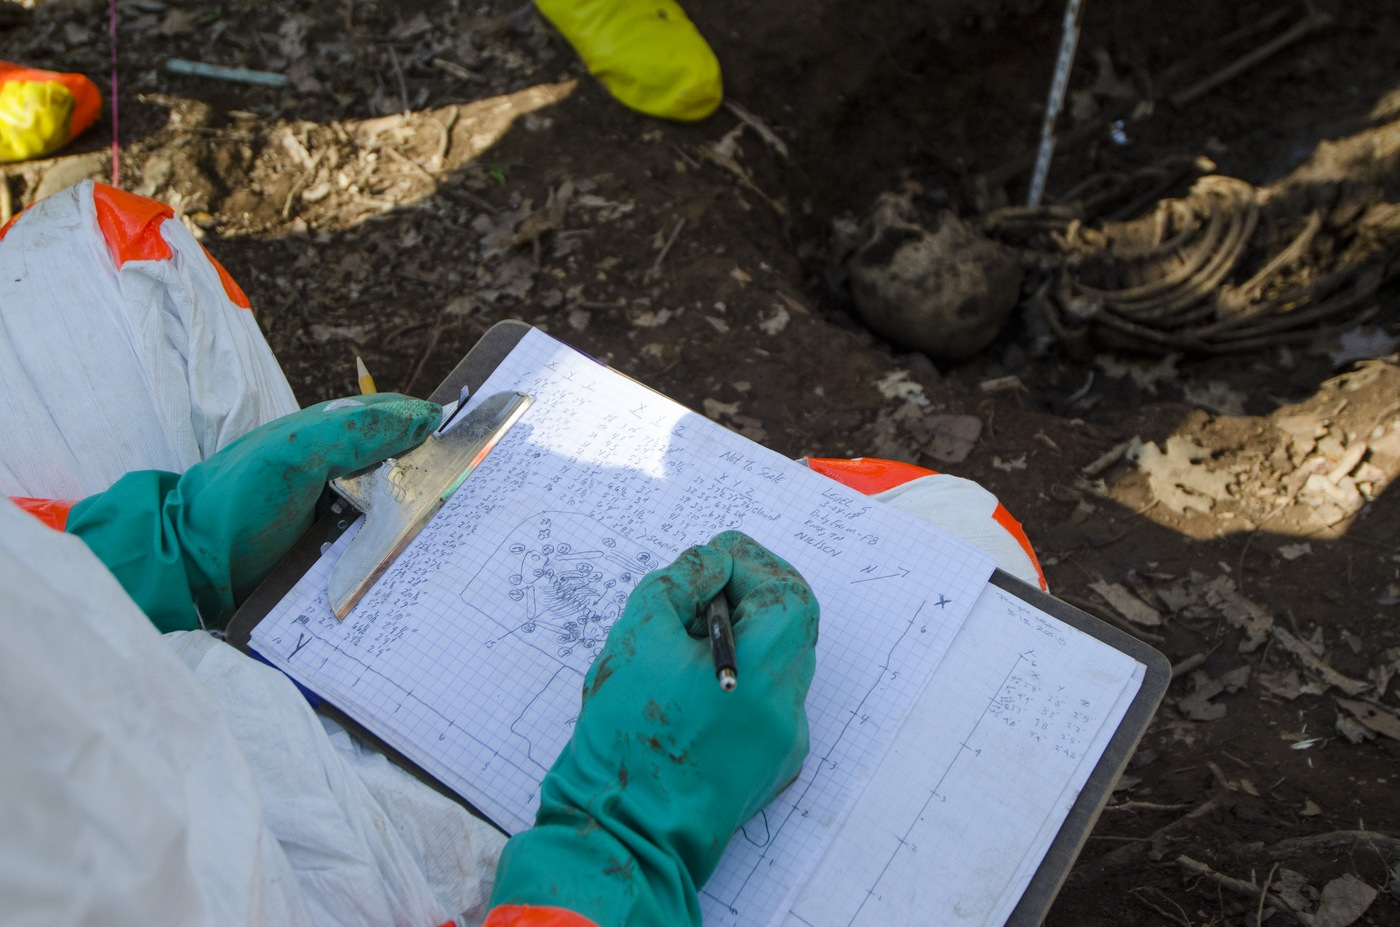 An FBI Evidence Response Team member sketches a burial site at the Anthropology Research Center in Knoxville, Tennessee, during the Human Remains Recovery course in March 2018.